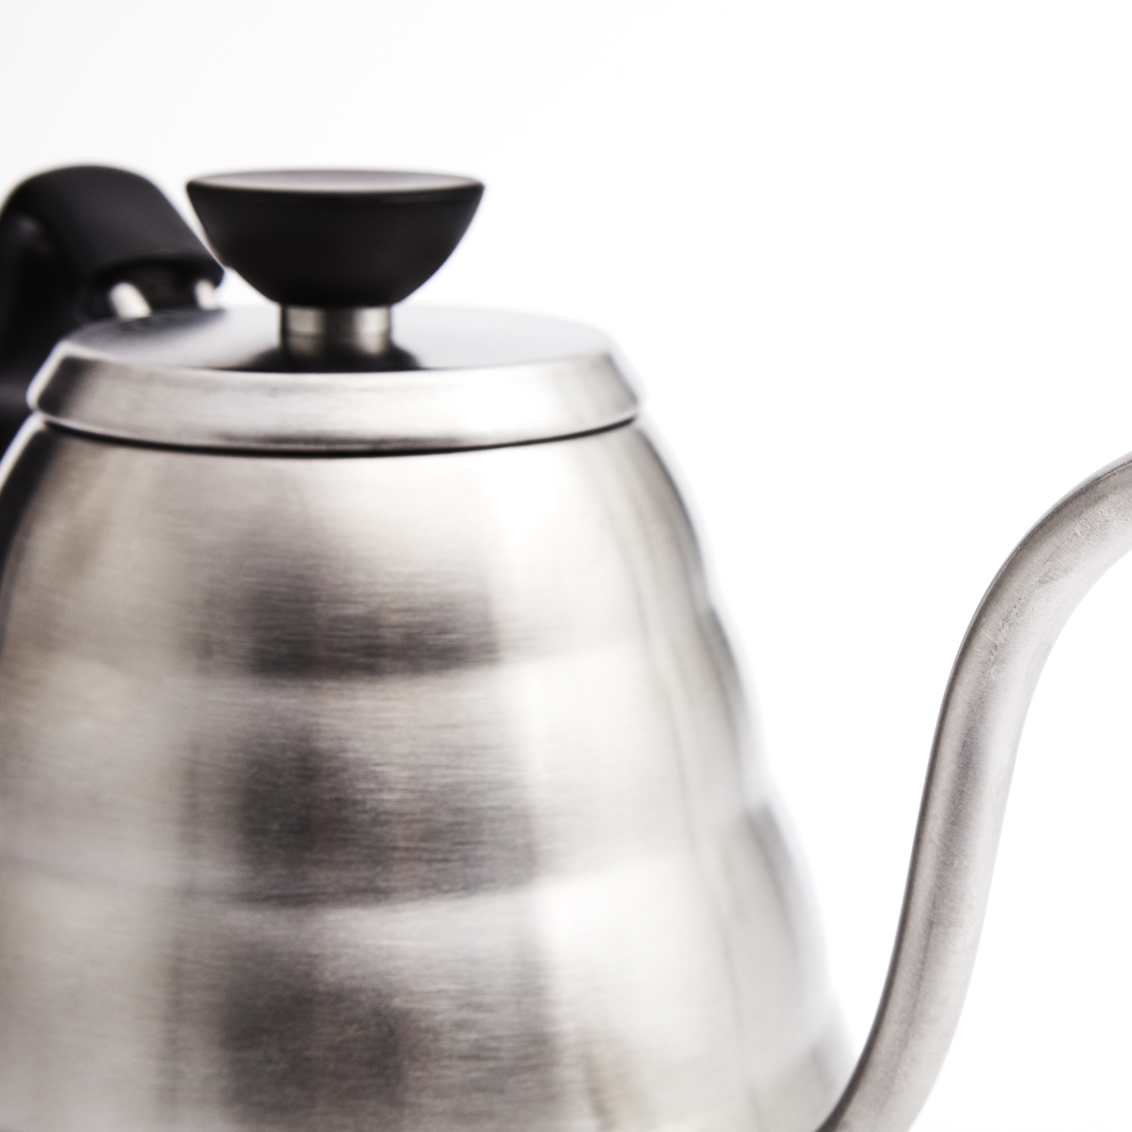 Buono Power Kettle